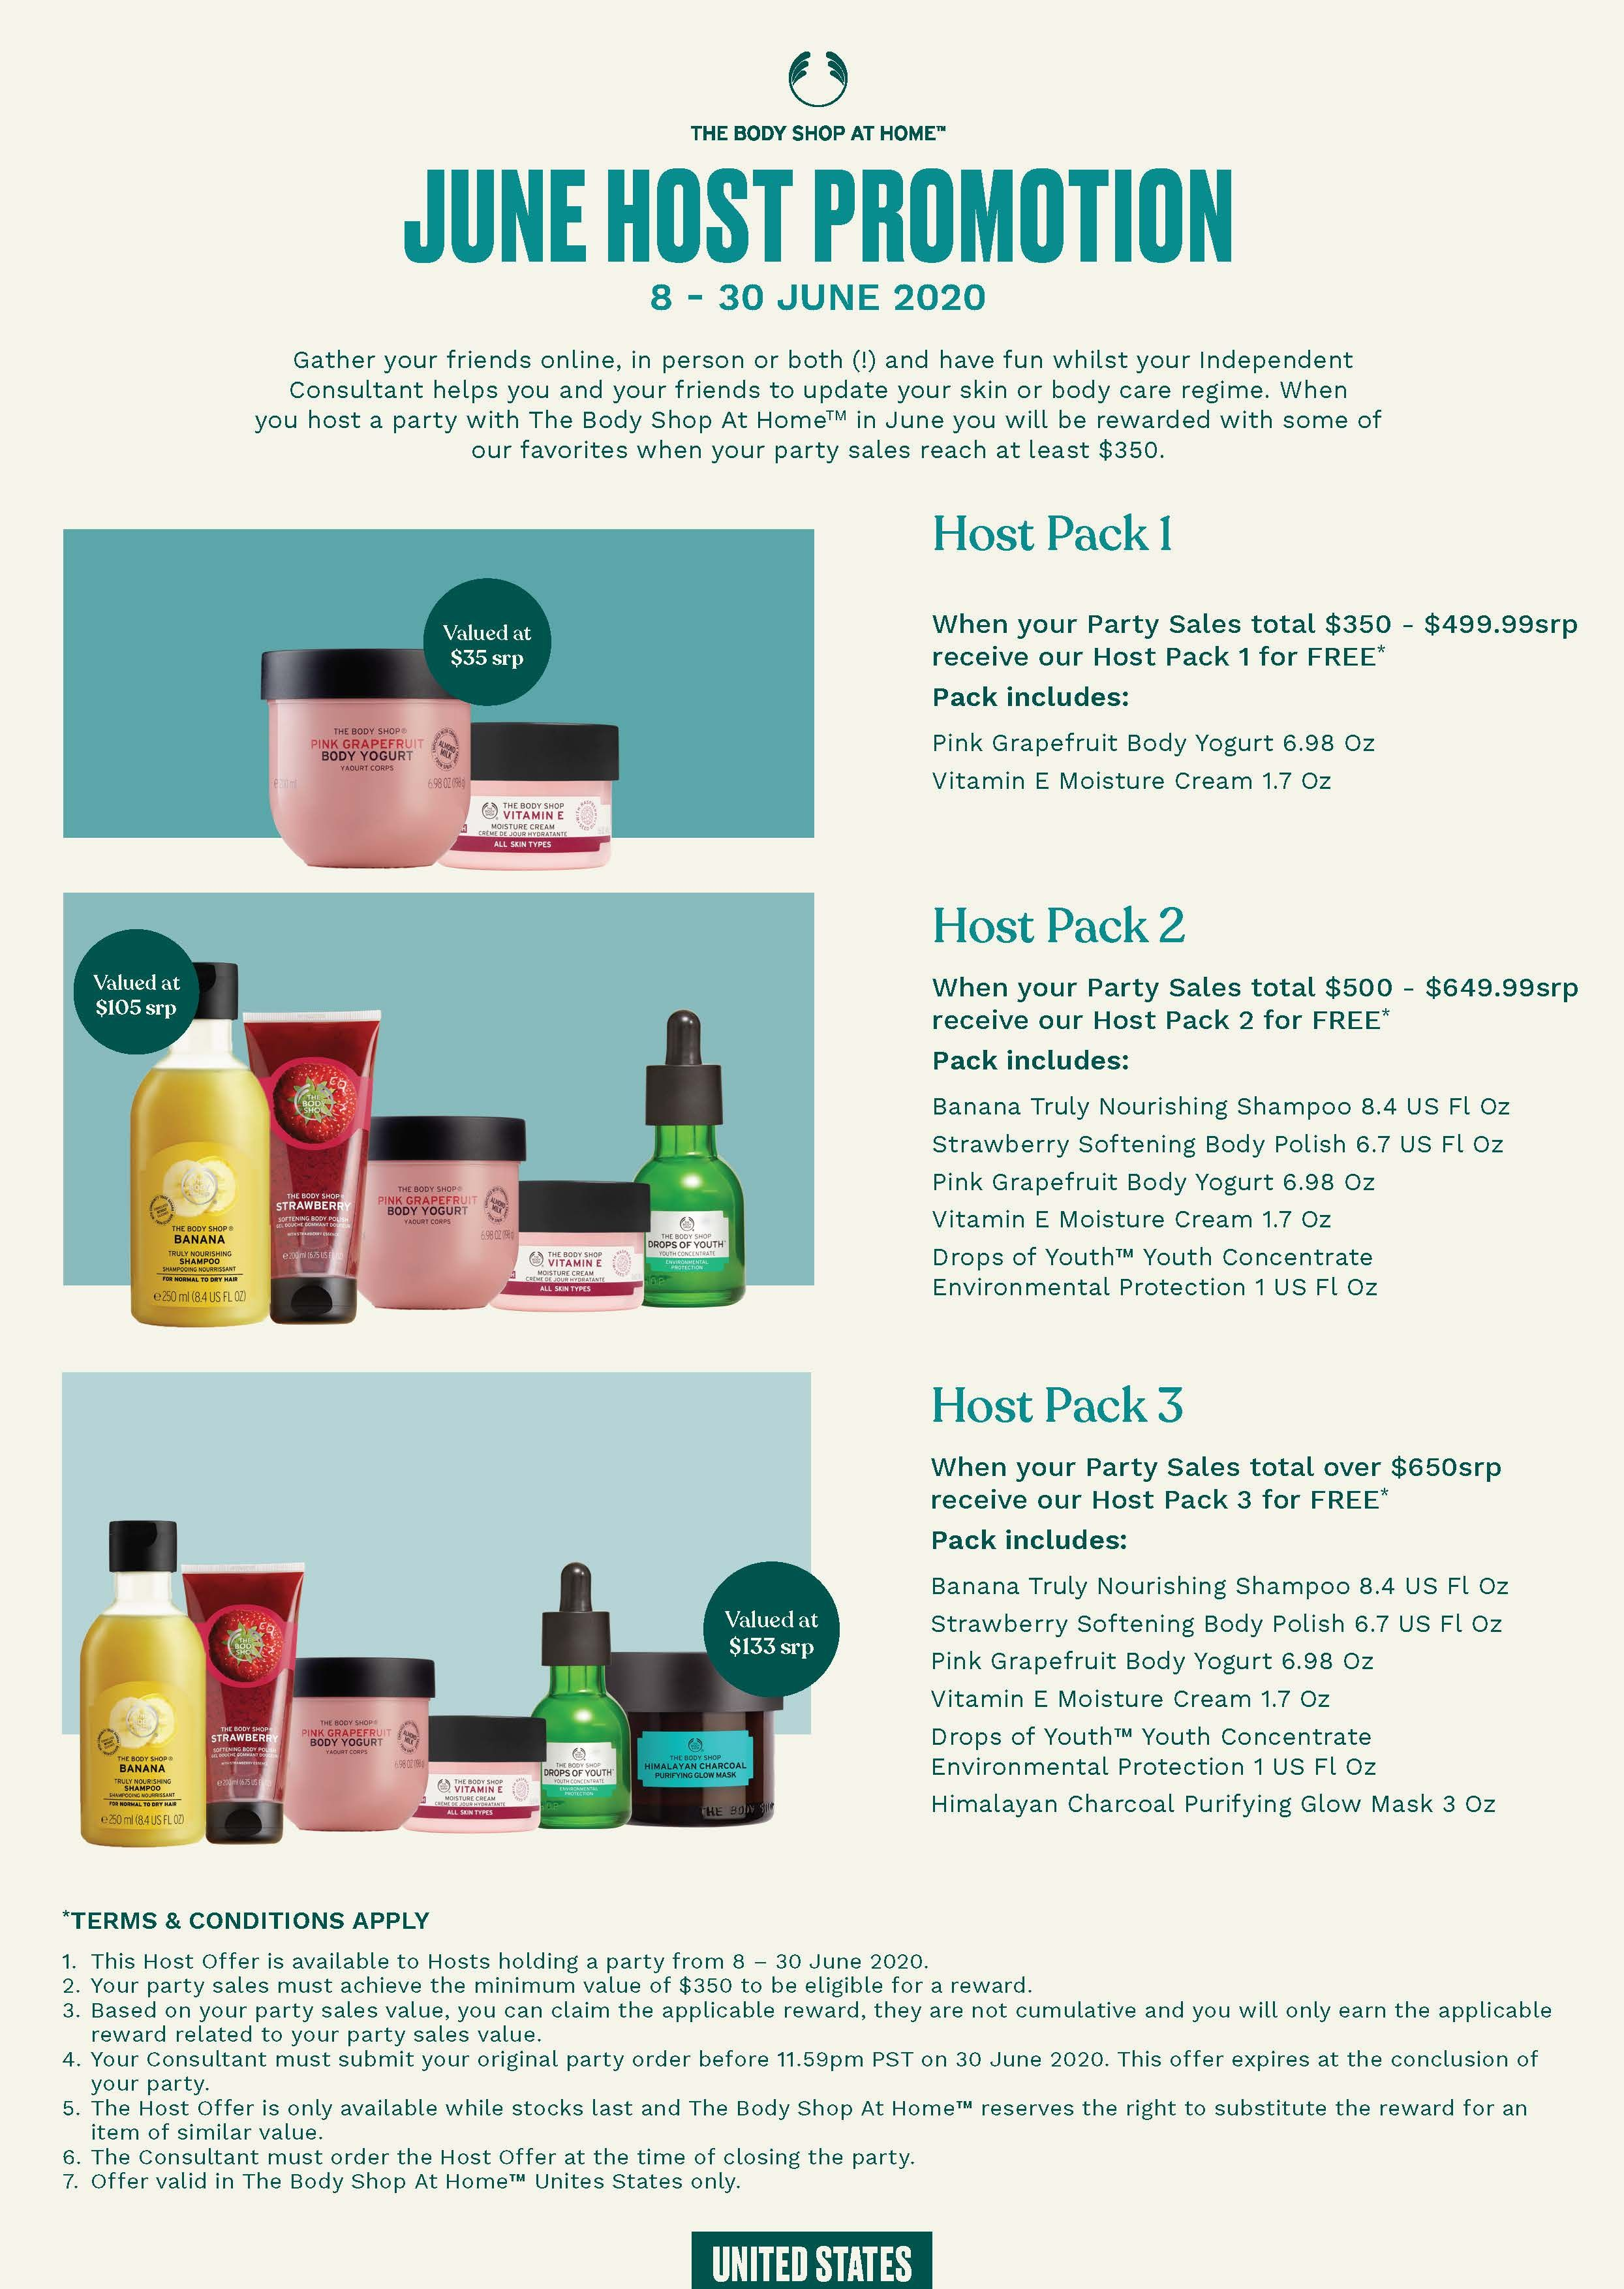 Host A Party And Earn These Body Shop Products Thebodyshop Skincare Pampering The Body Shop Body Shop At Home Body